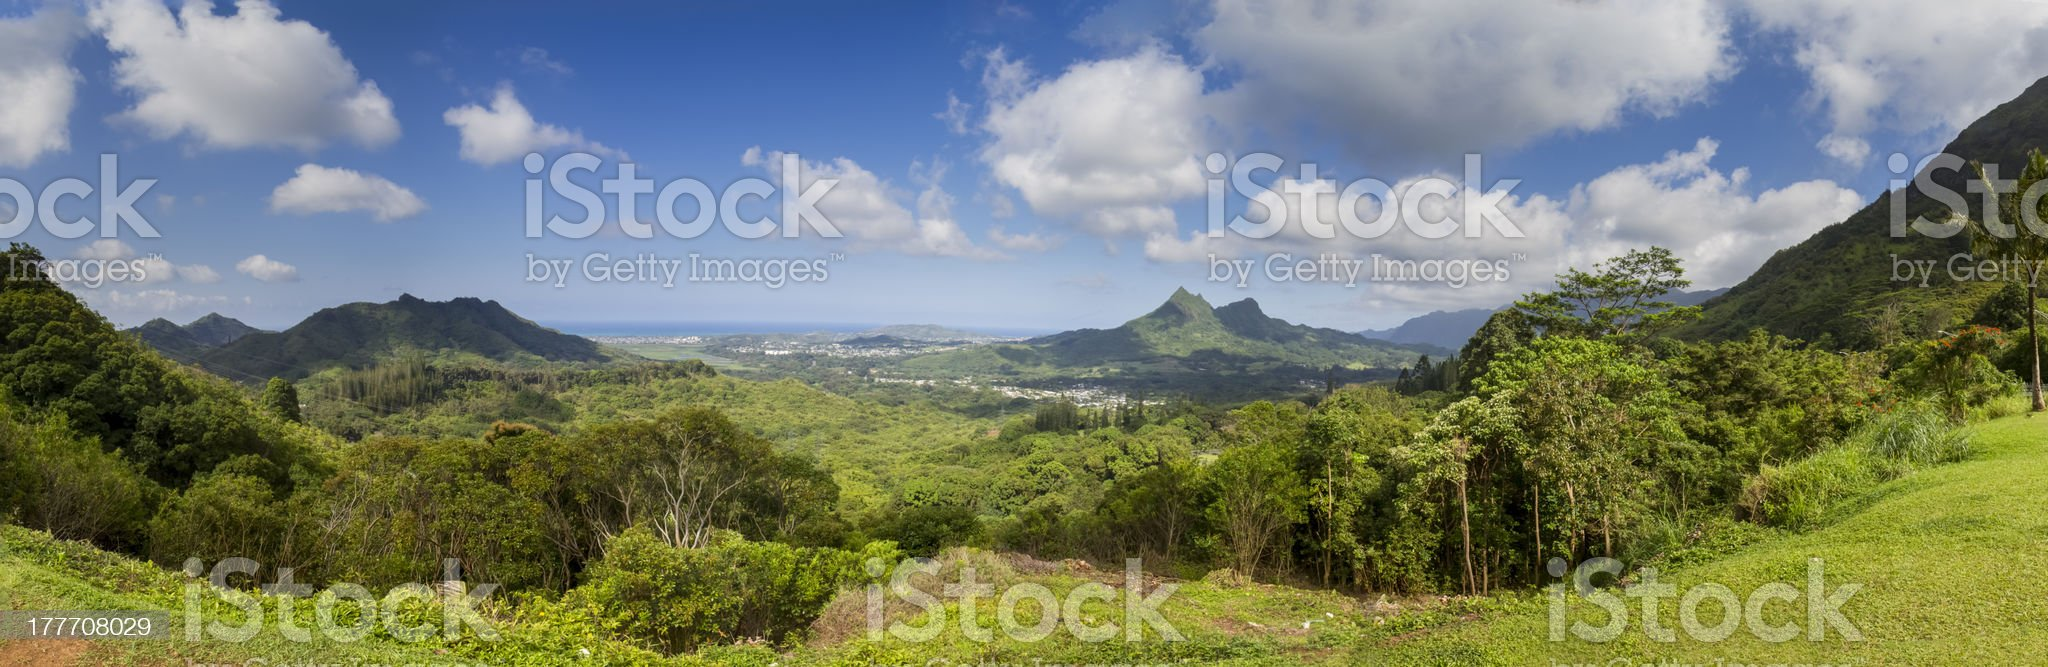 Landscape in Oahu, Hawaii royalty-free stock photo